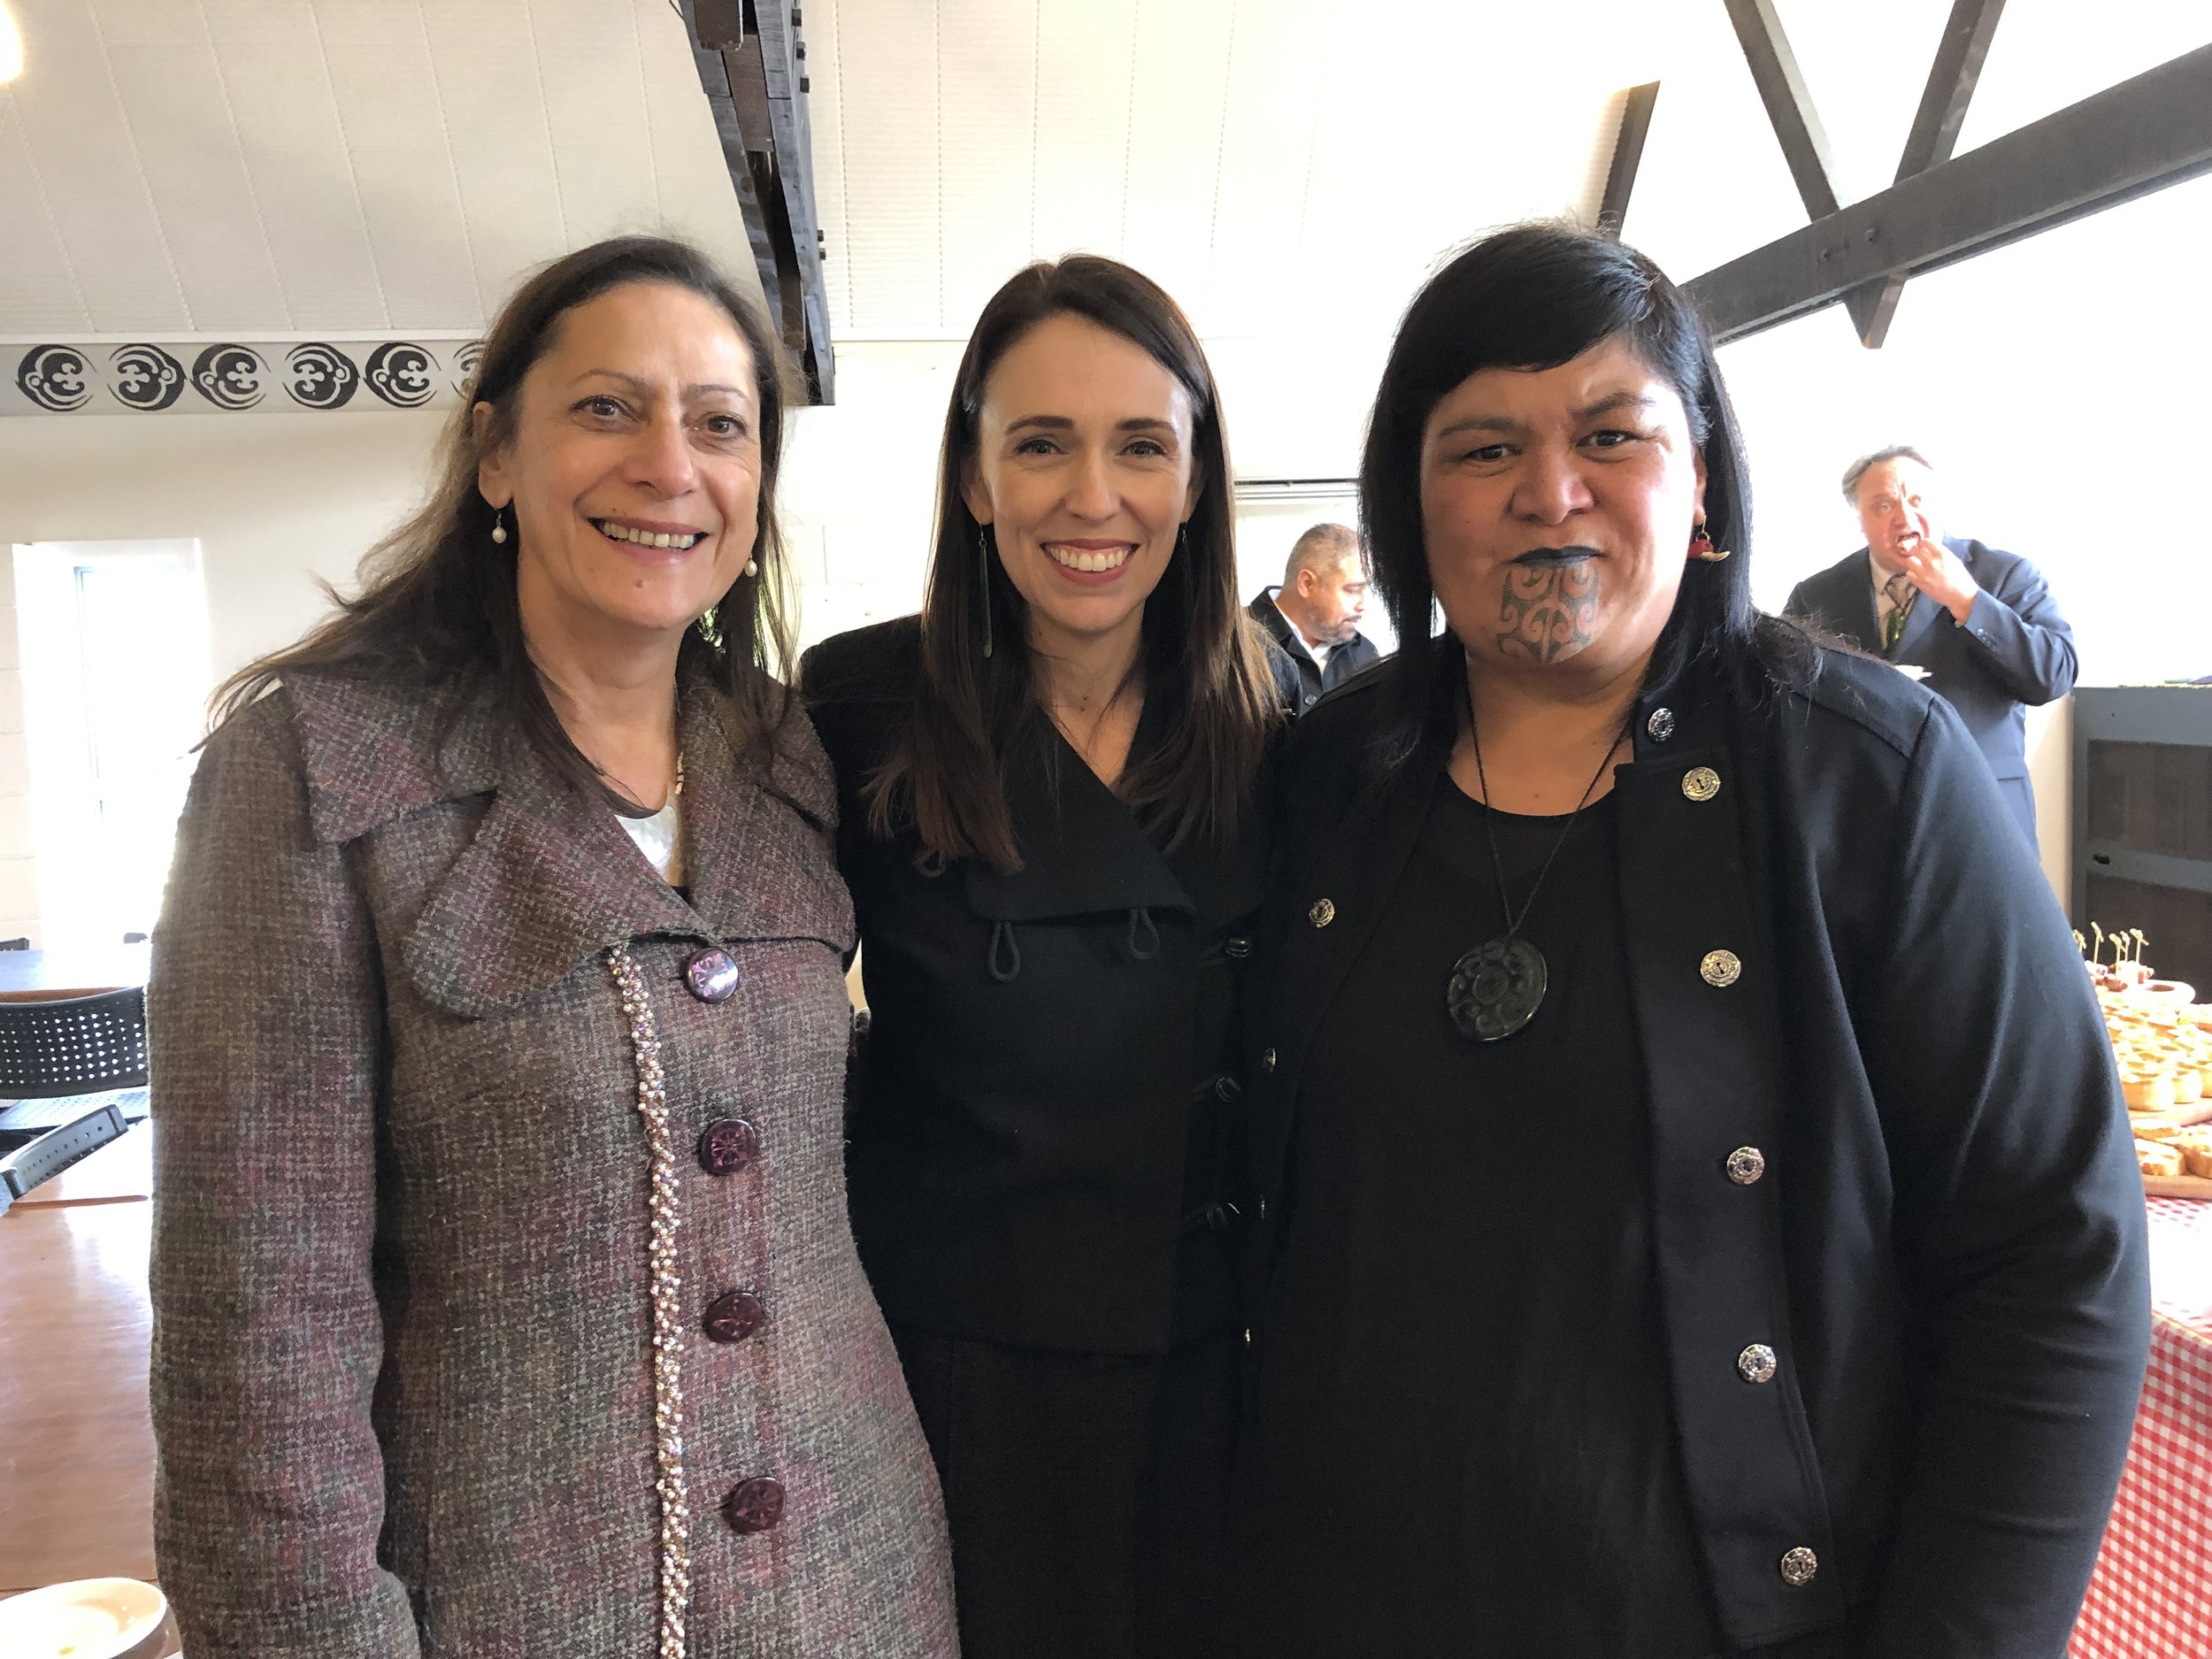 The Prime Minister, Rt Hon Jacinda Ardern and Minister for Māori Development, Hon Nanaia Mahuta, with newest minister, Hon Poto Williams, Minister for Community and Voluntary Sector.